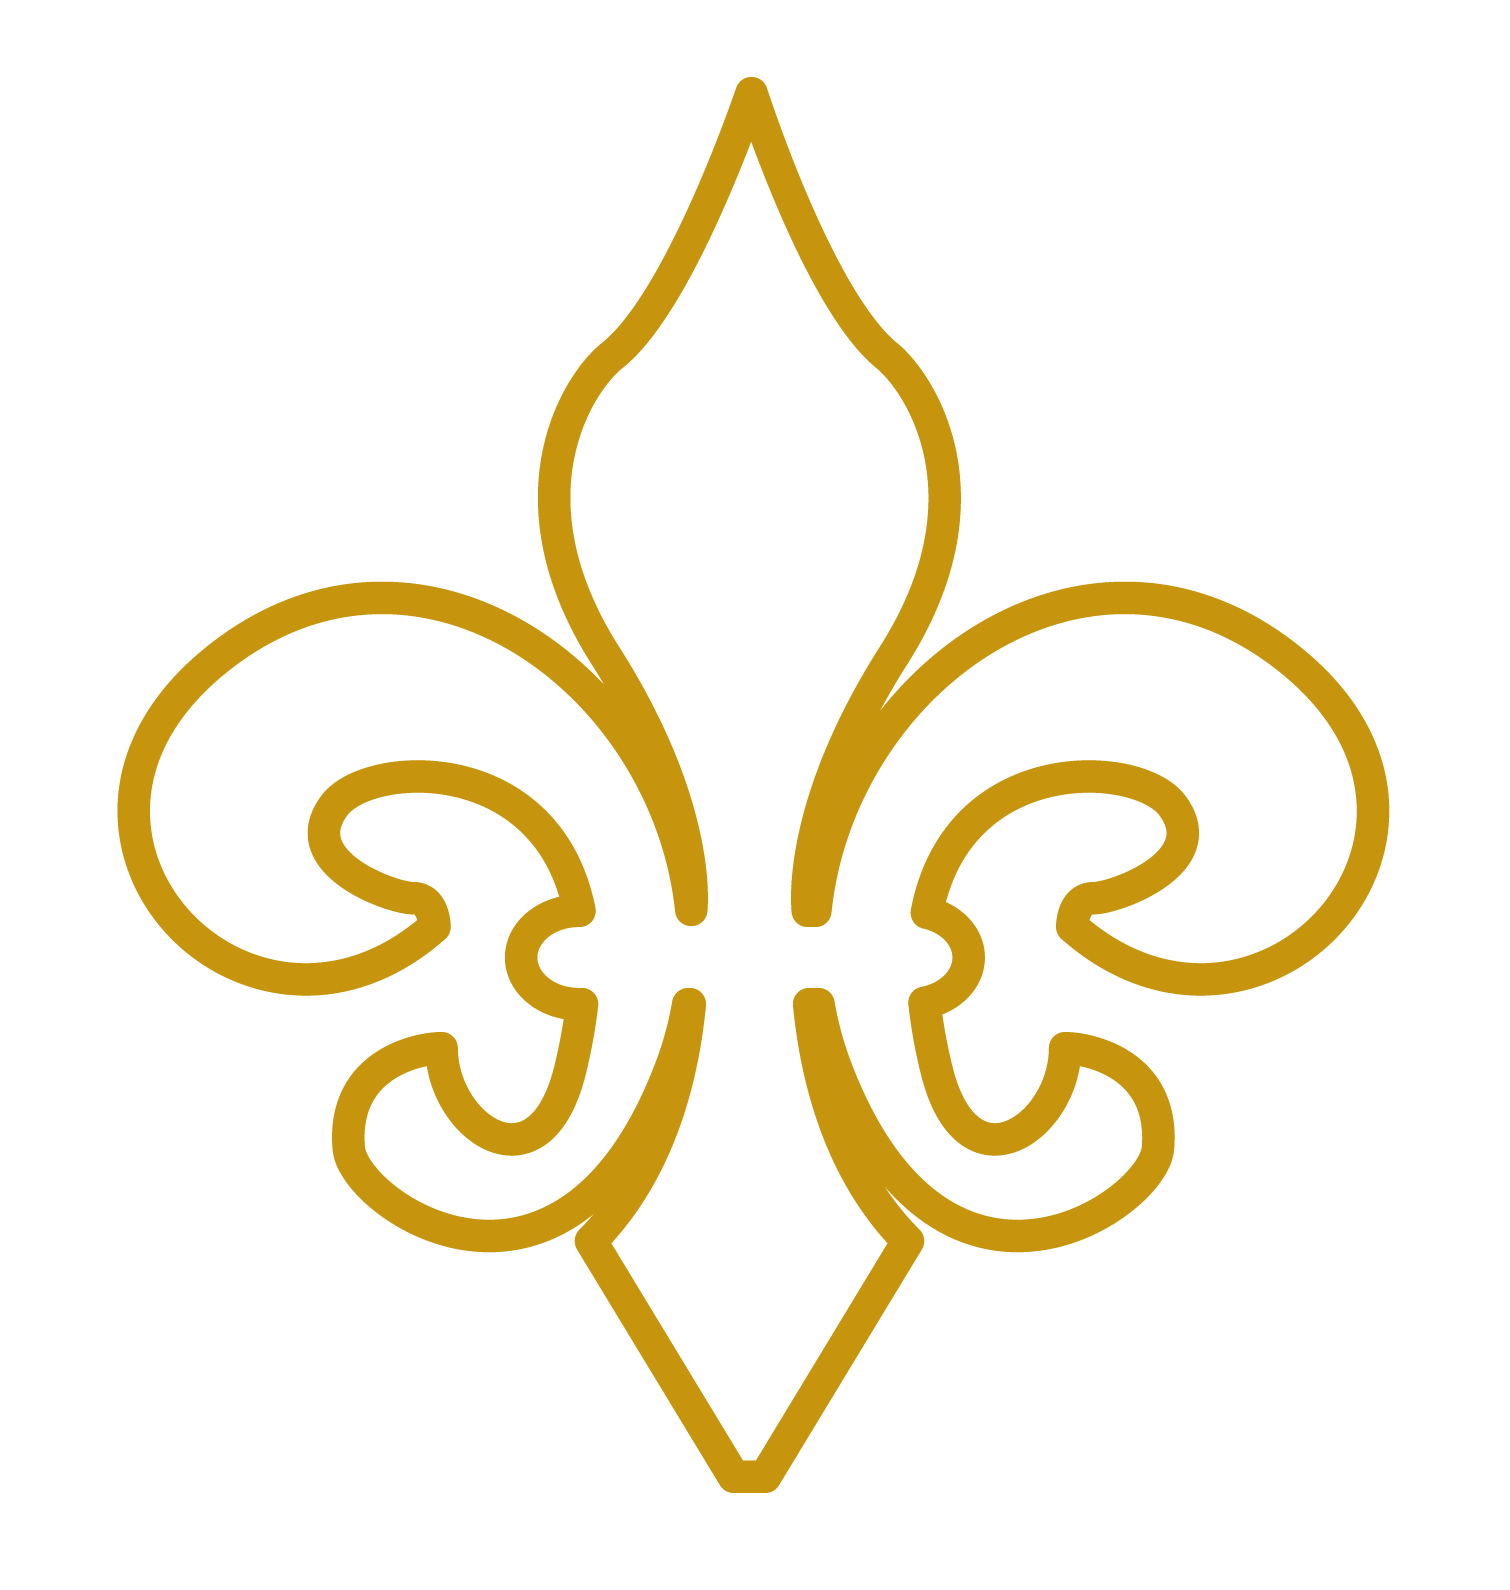 Gold Outline Fleur de Lis Vector Clip Art